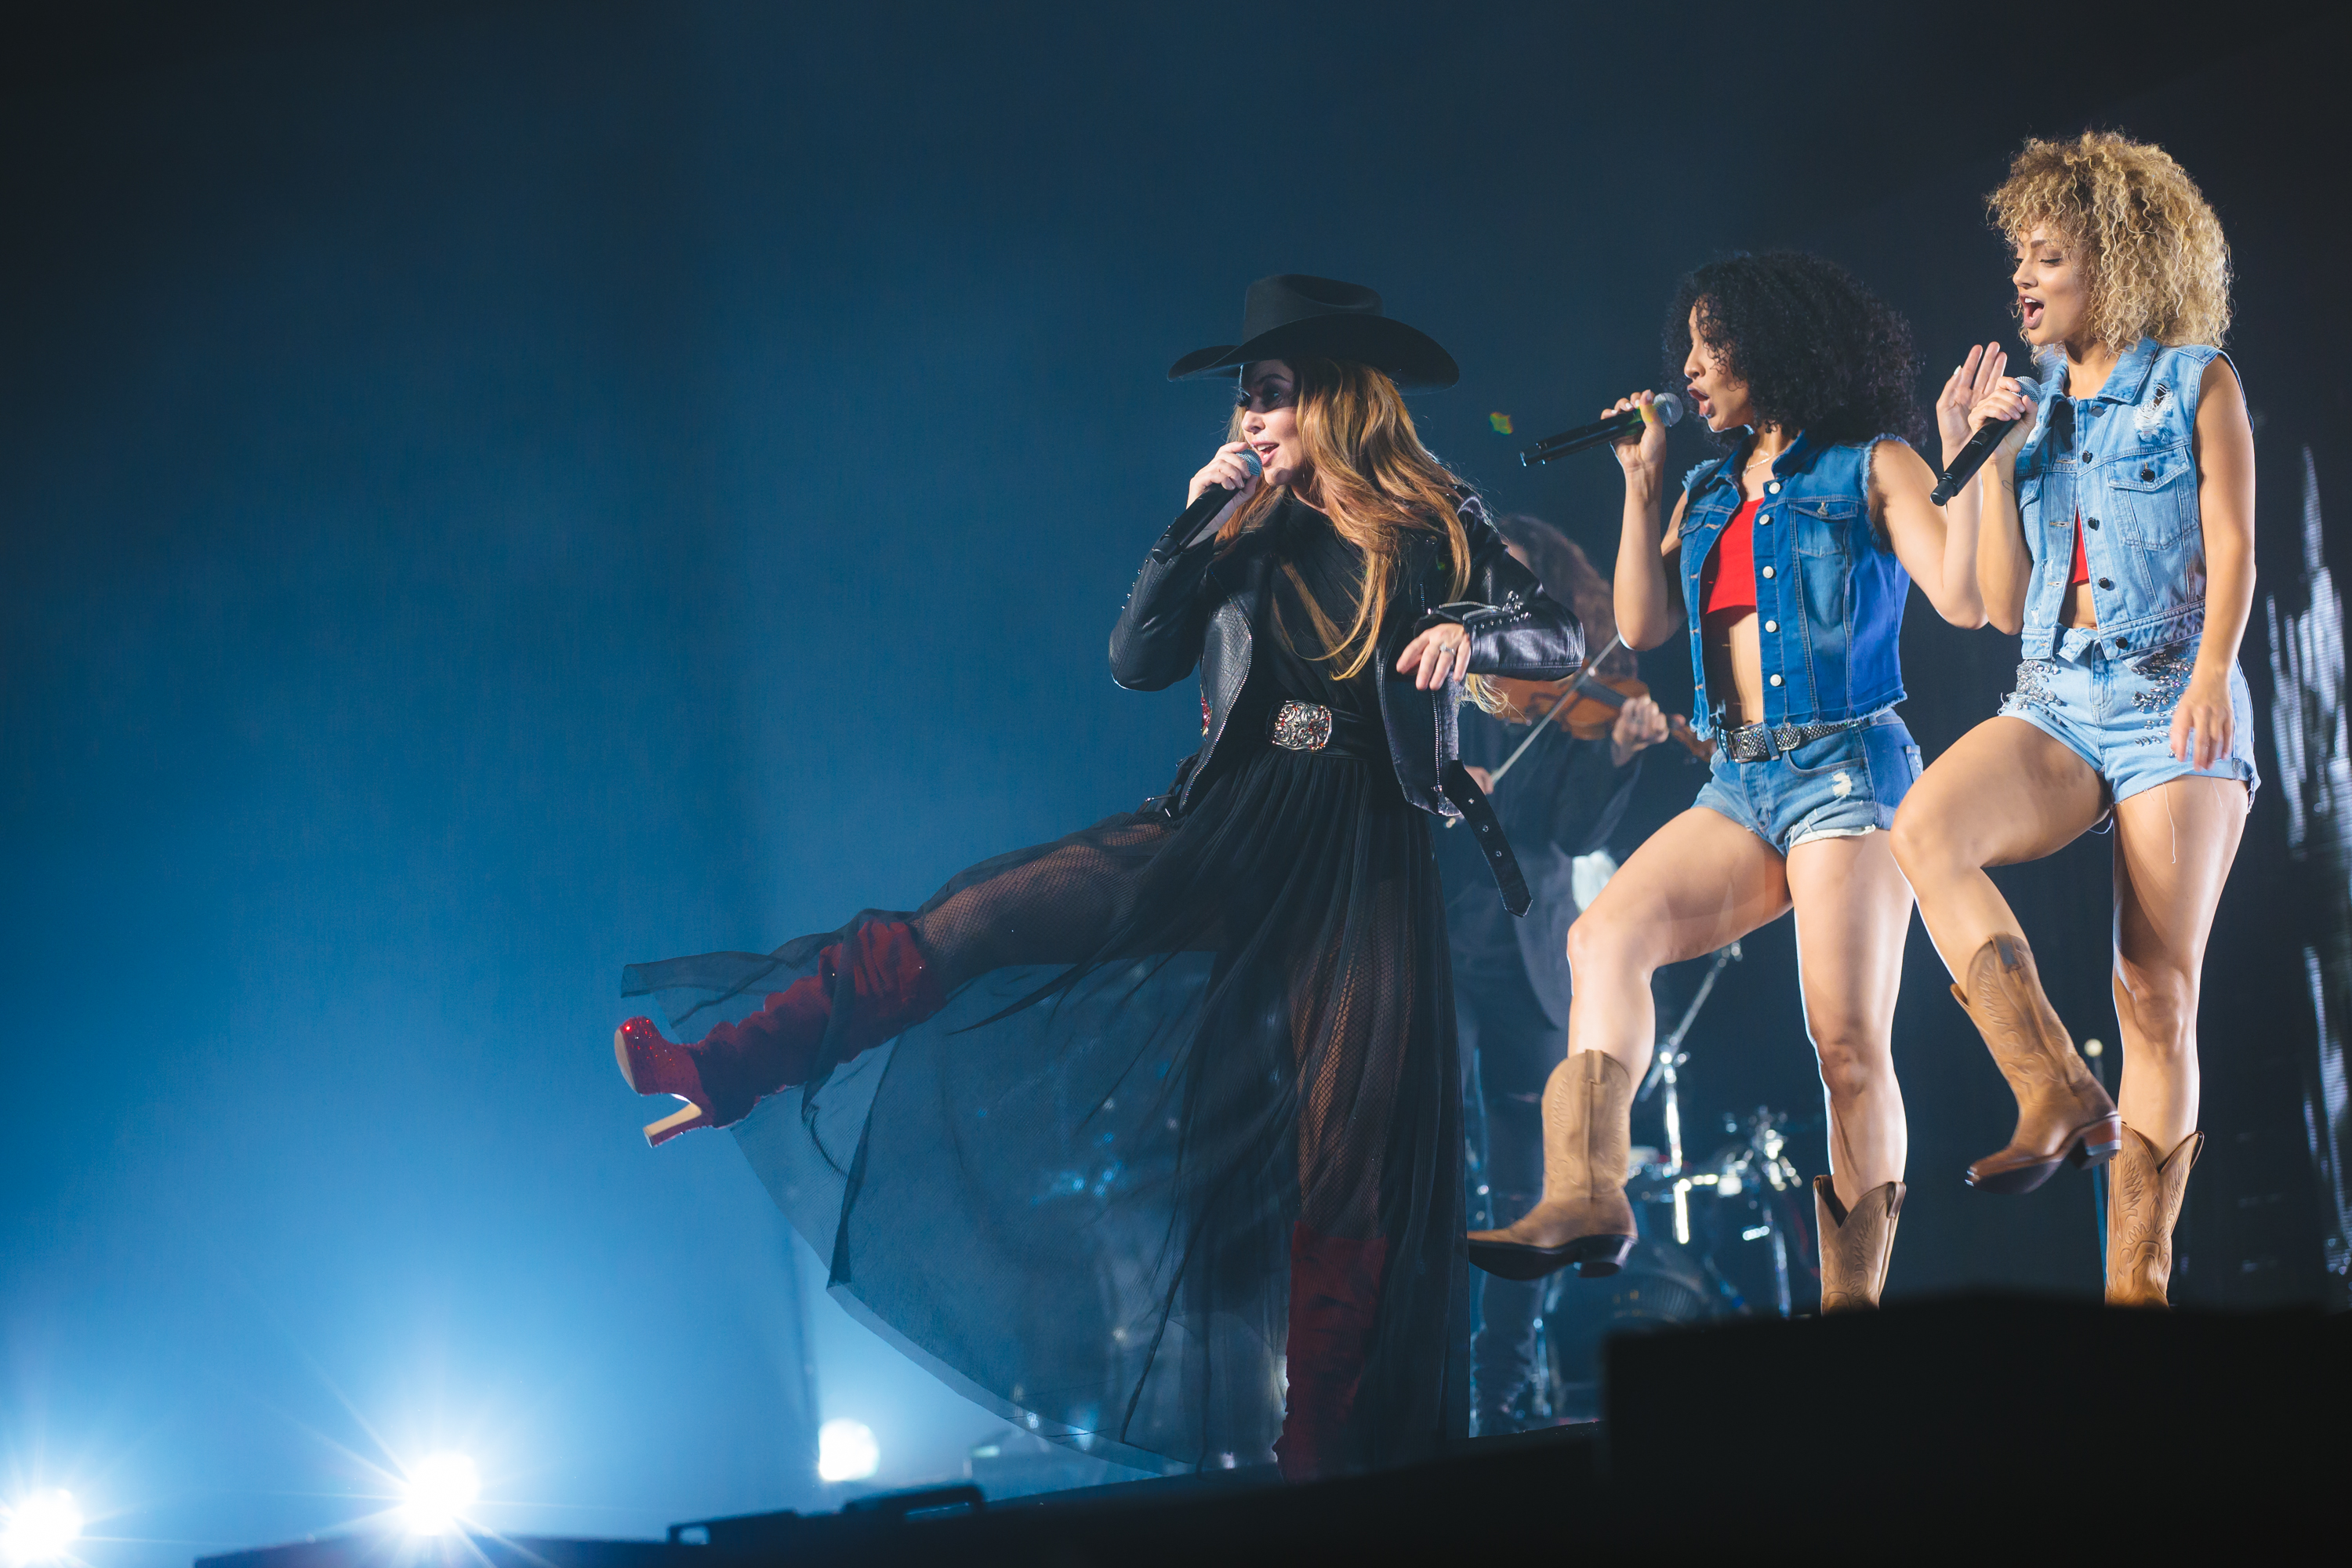 Get the insiders look into shania twains now news megacountry see exclusive video of the superstar as she performs on her explosive world tour m4hsunfo